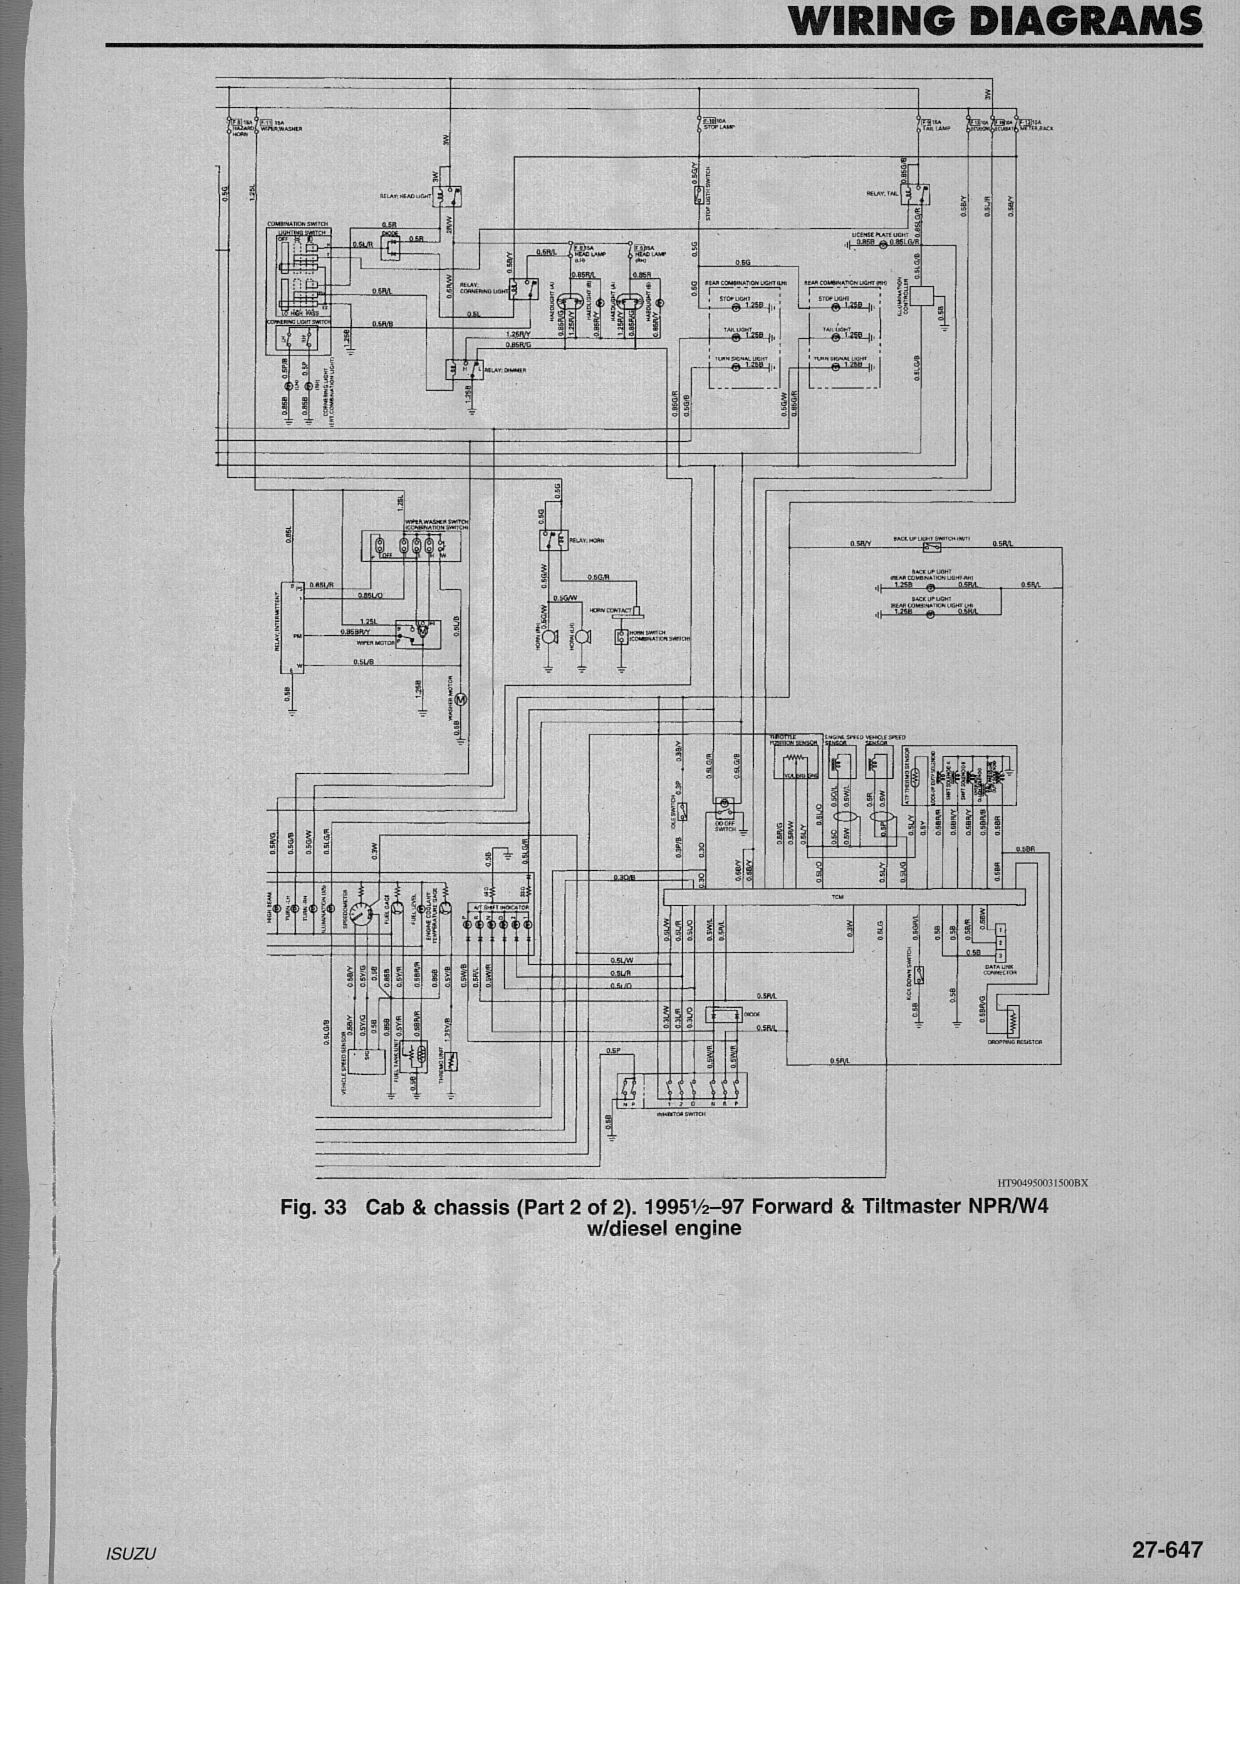 Diagram 2003 Isuzu Npr Wiring Diagram Full Version Hd Quality Wiring Diagram Hwolfewiring Varosrl It